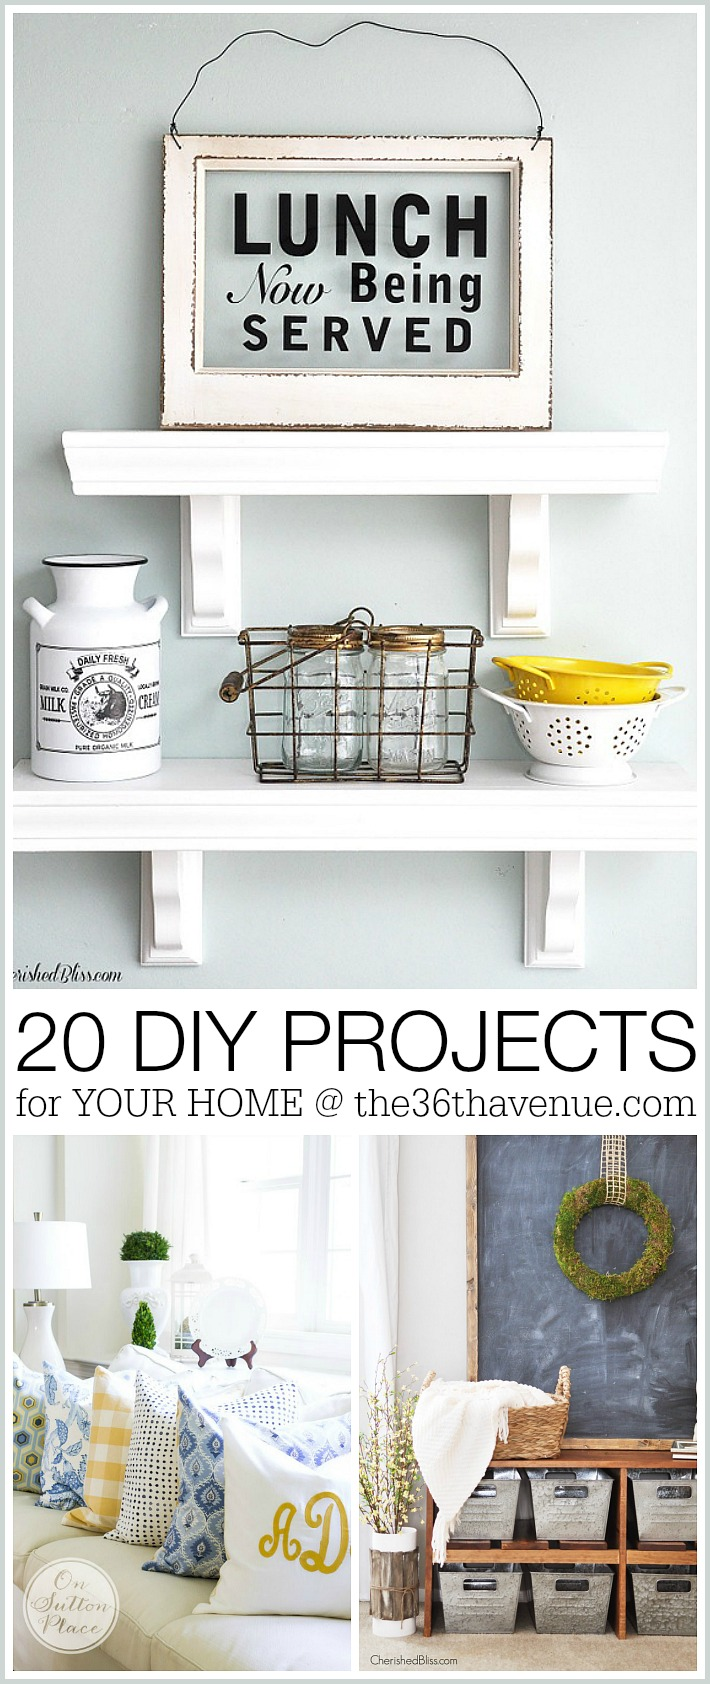 Home decor diy projects the 36th avenue for Home design diy ideas